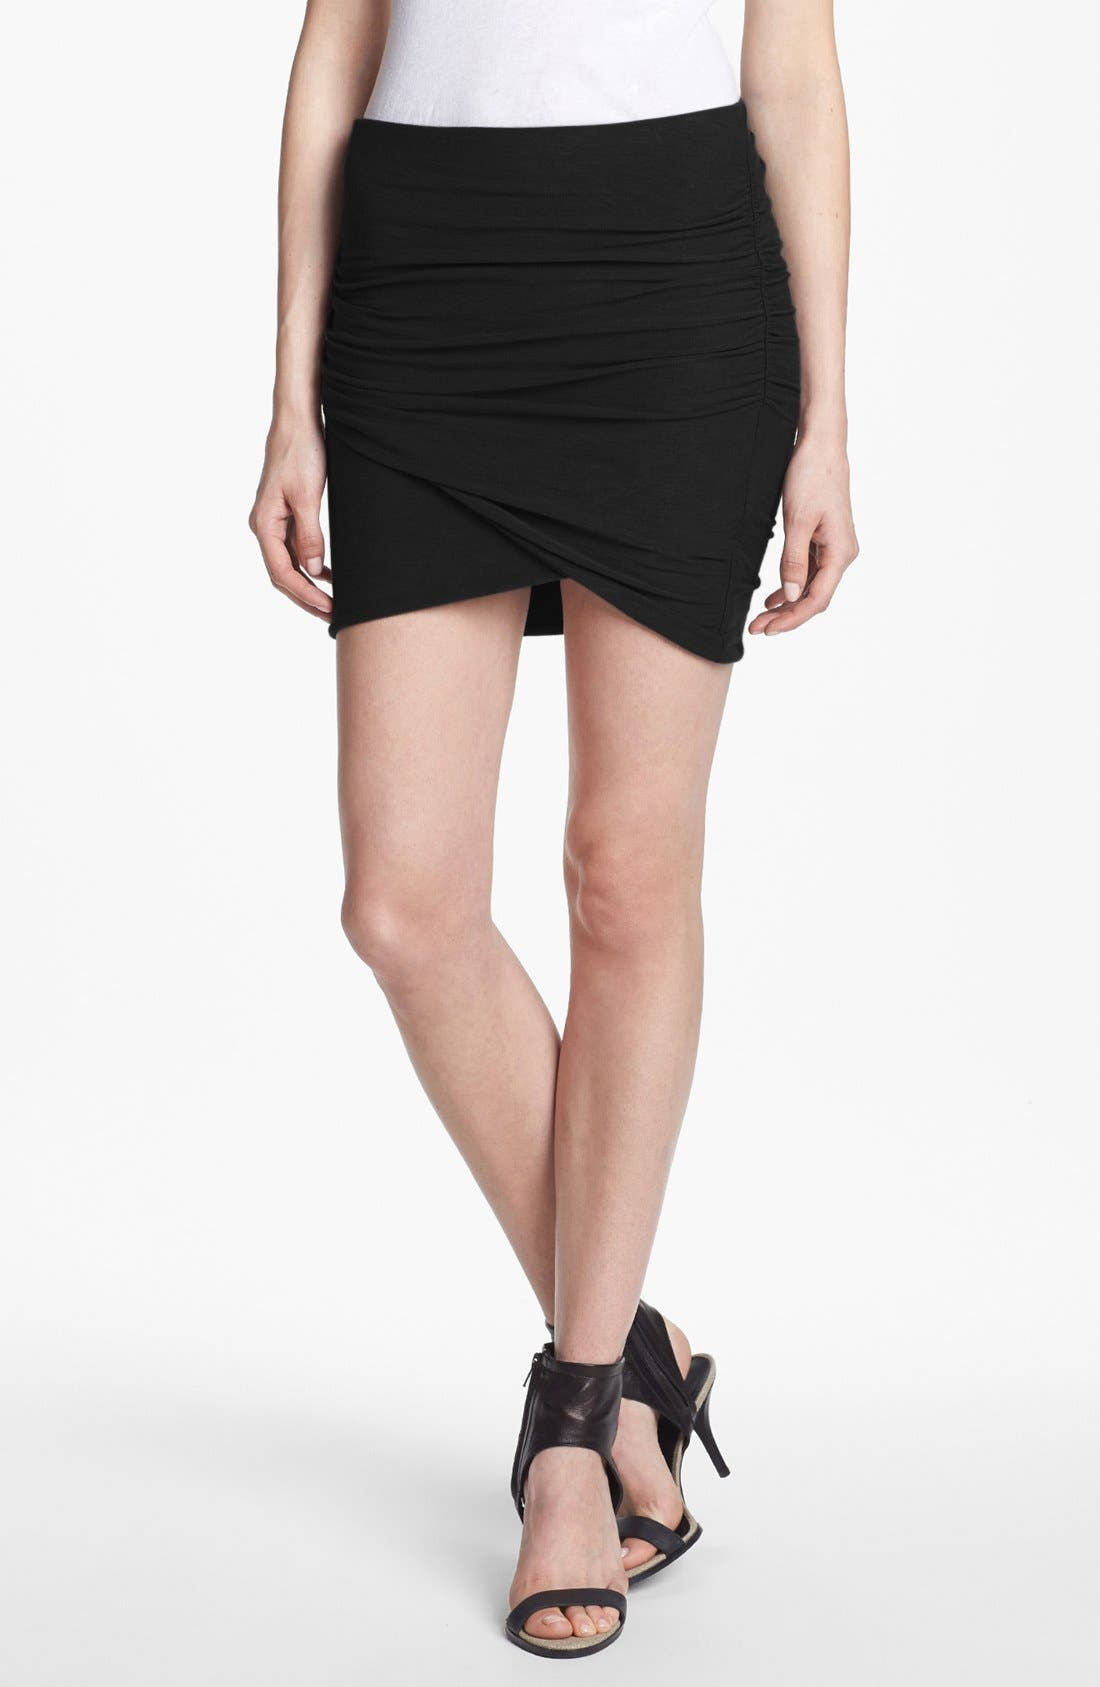 JAMES PERSE, Wrapped Miniskirt, Main thumbnail 1, color, BLACK